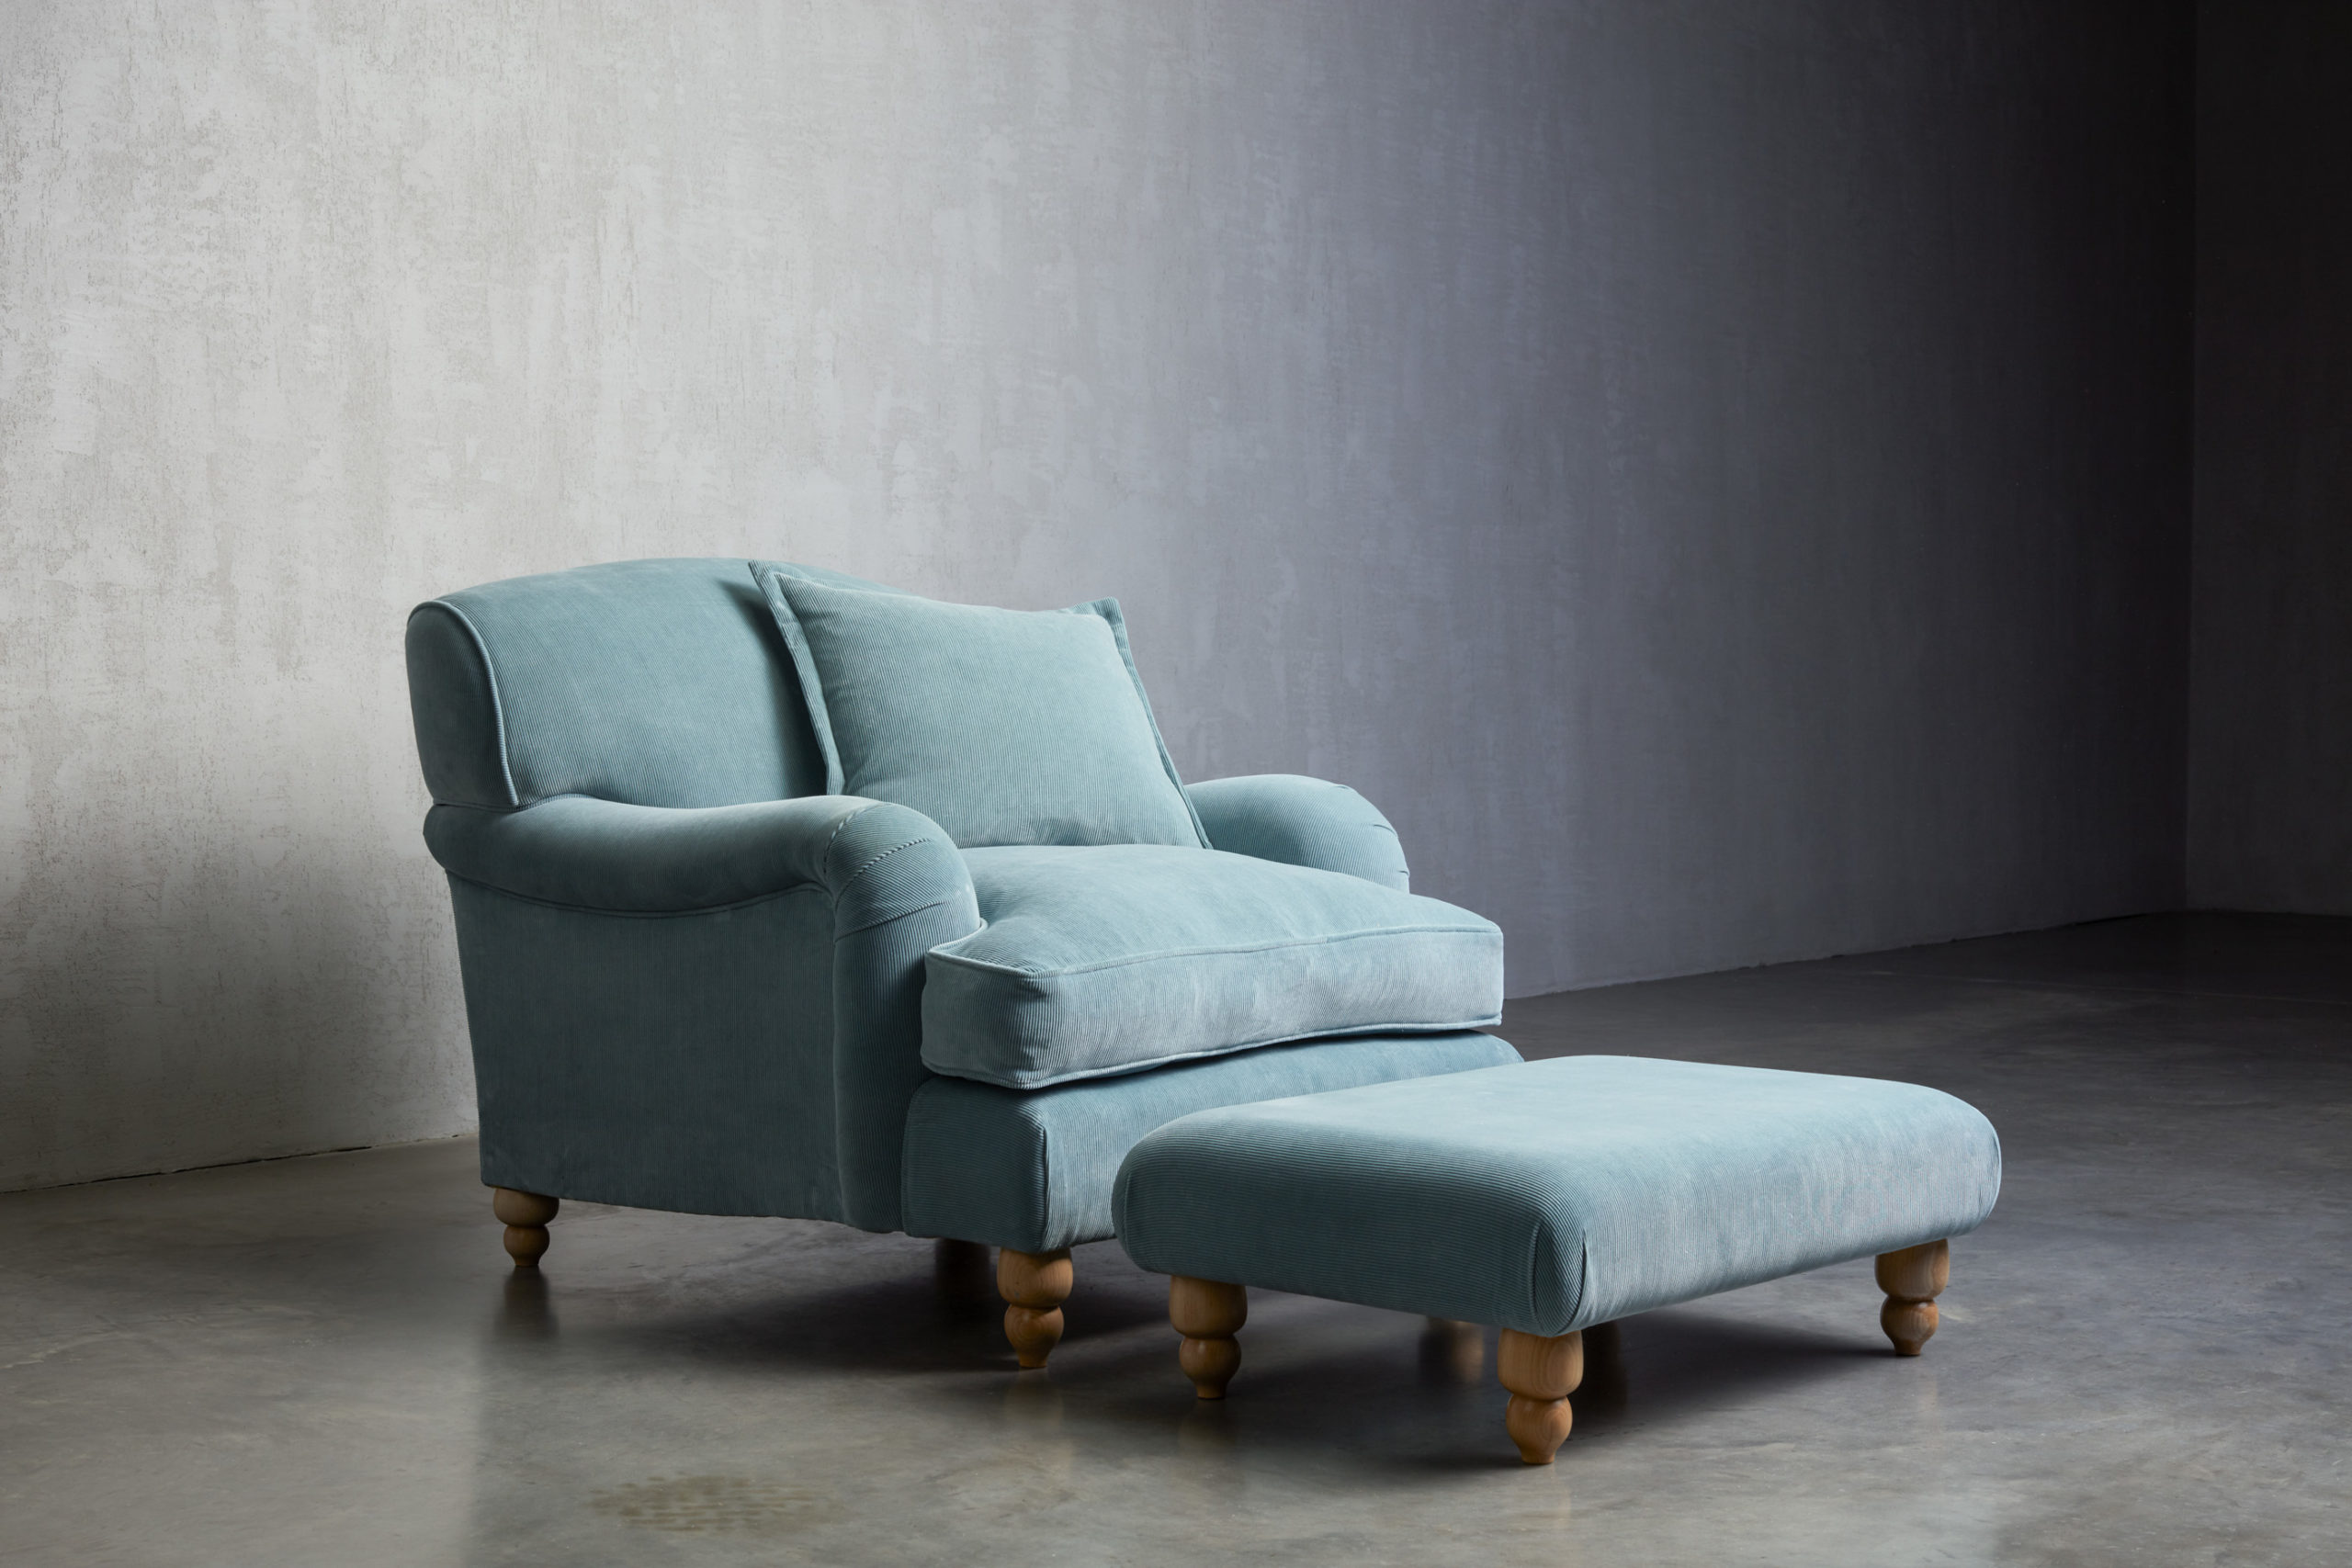 Wells Chair made by UP sofa makers